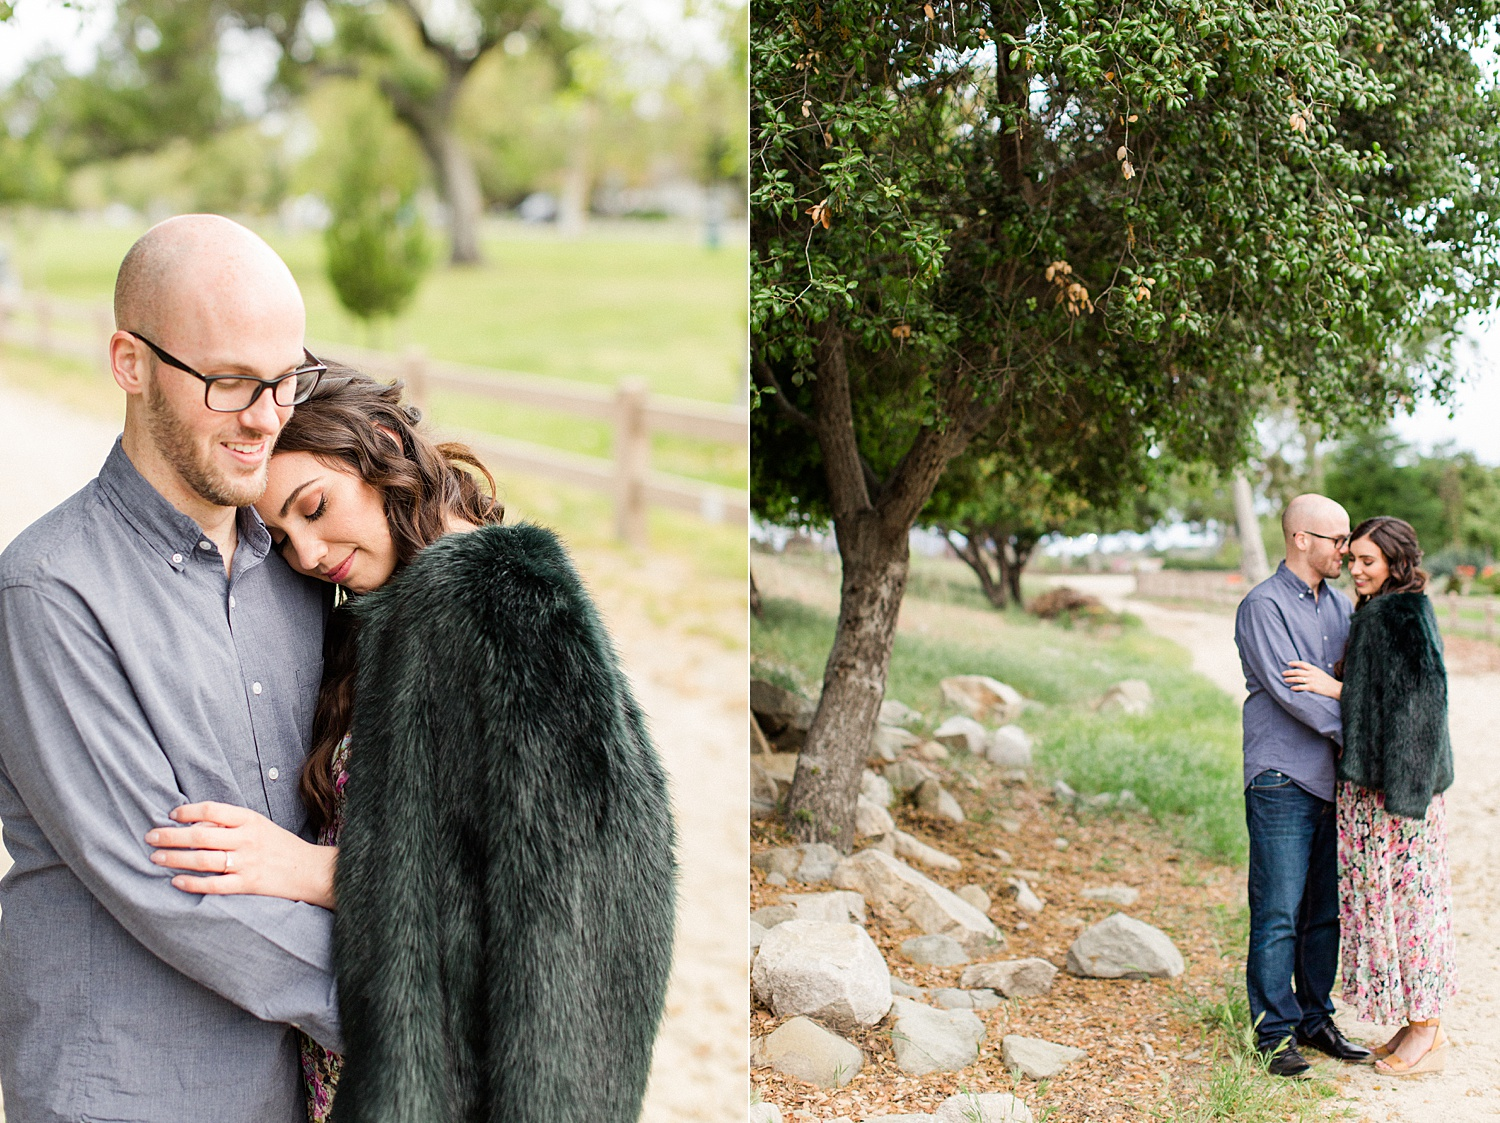 thevondys.com | Griffith Park | Los Angeles Wedding Photographer | The Vondys